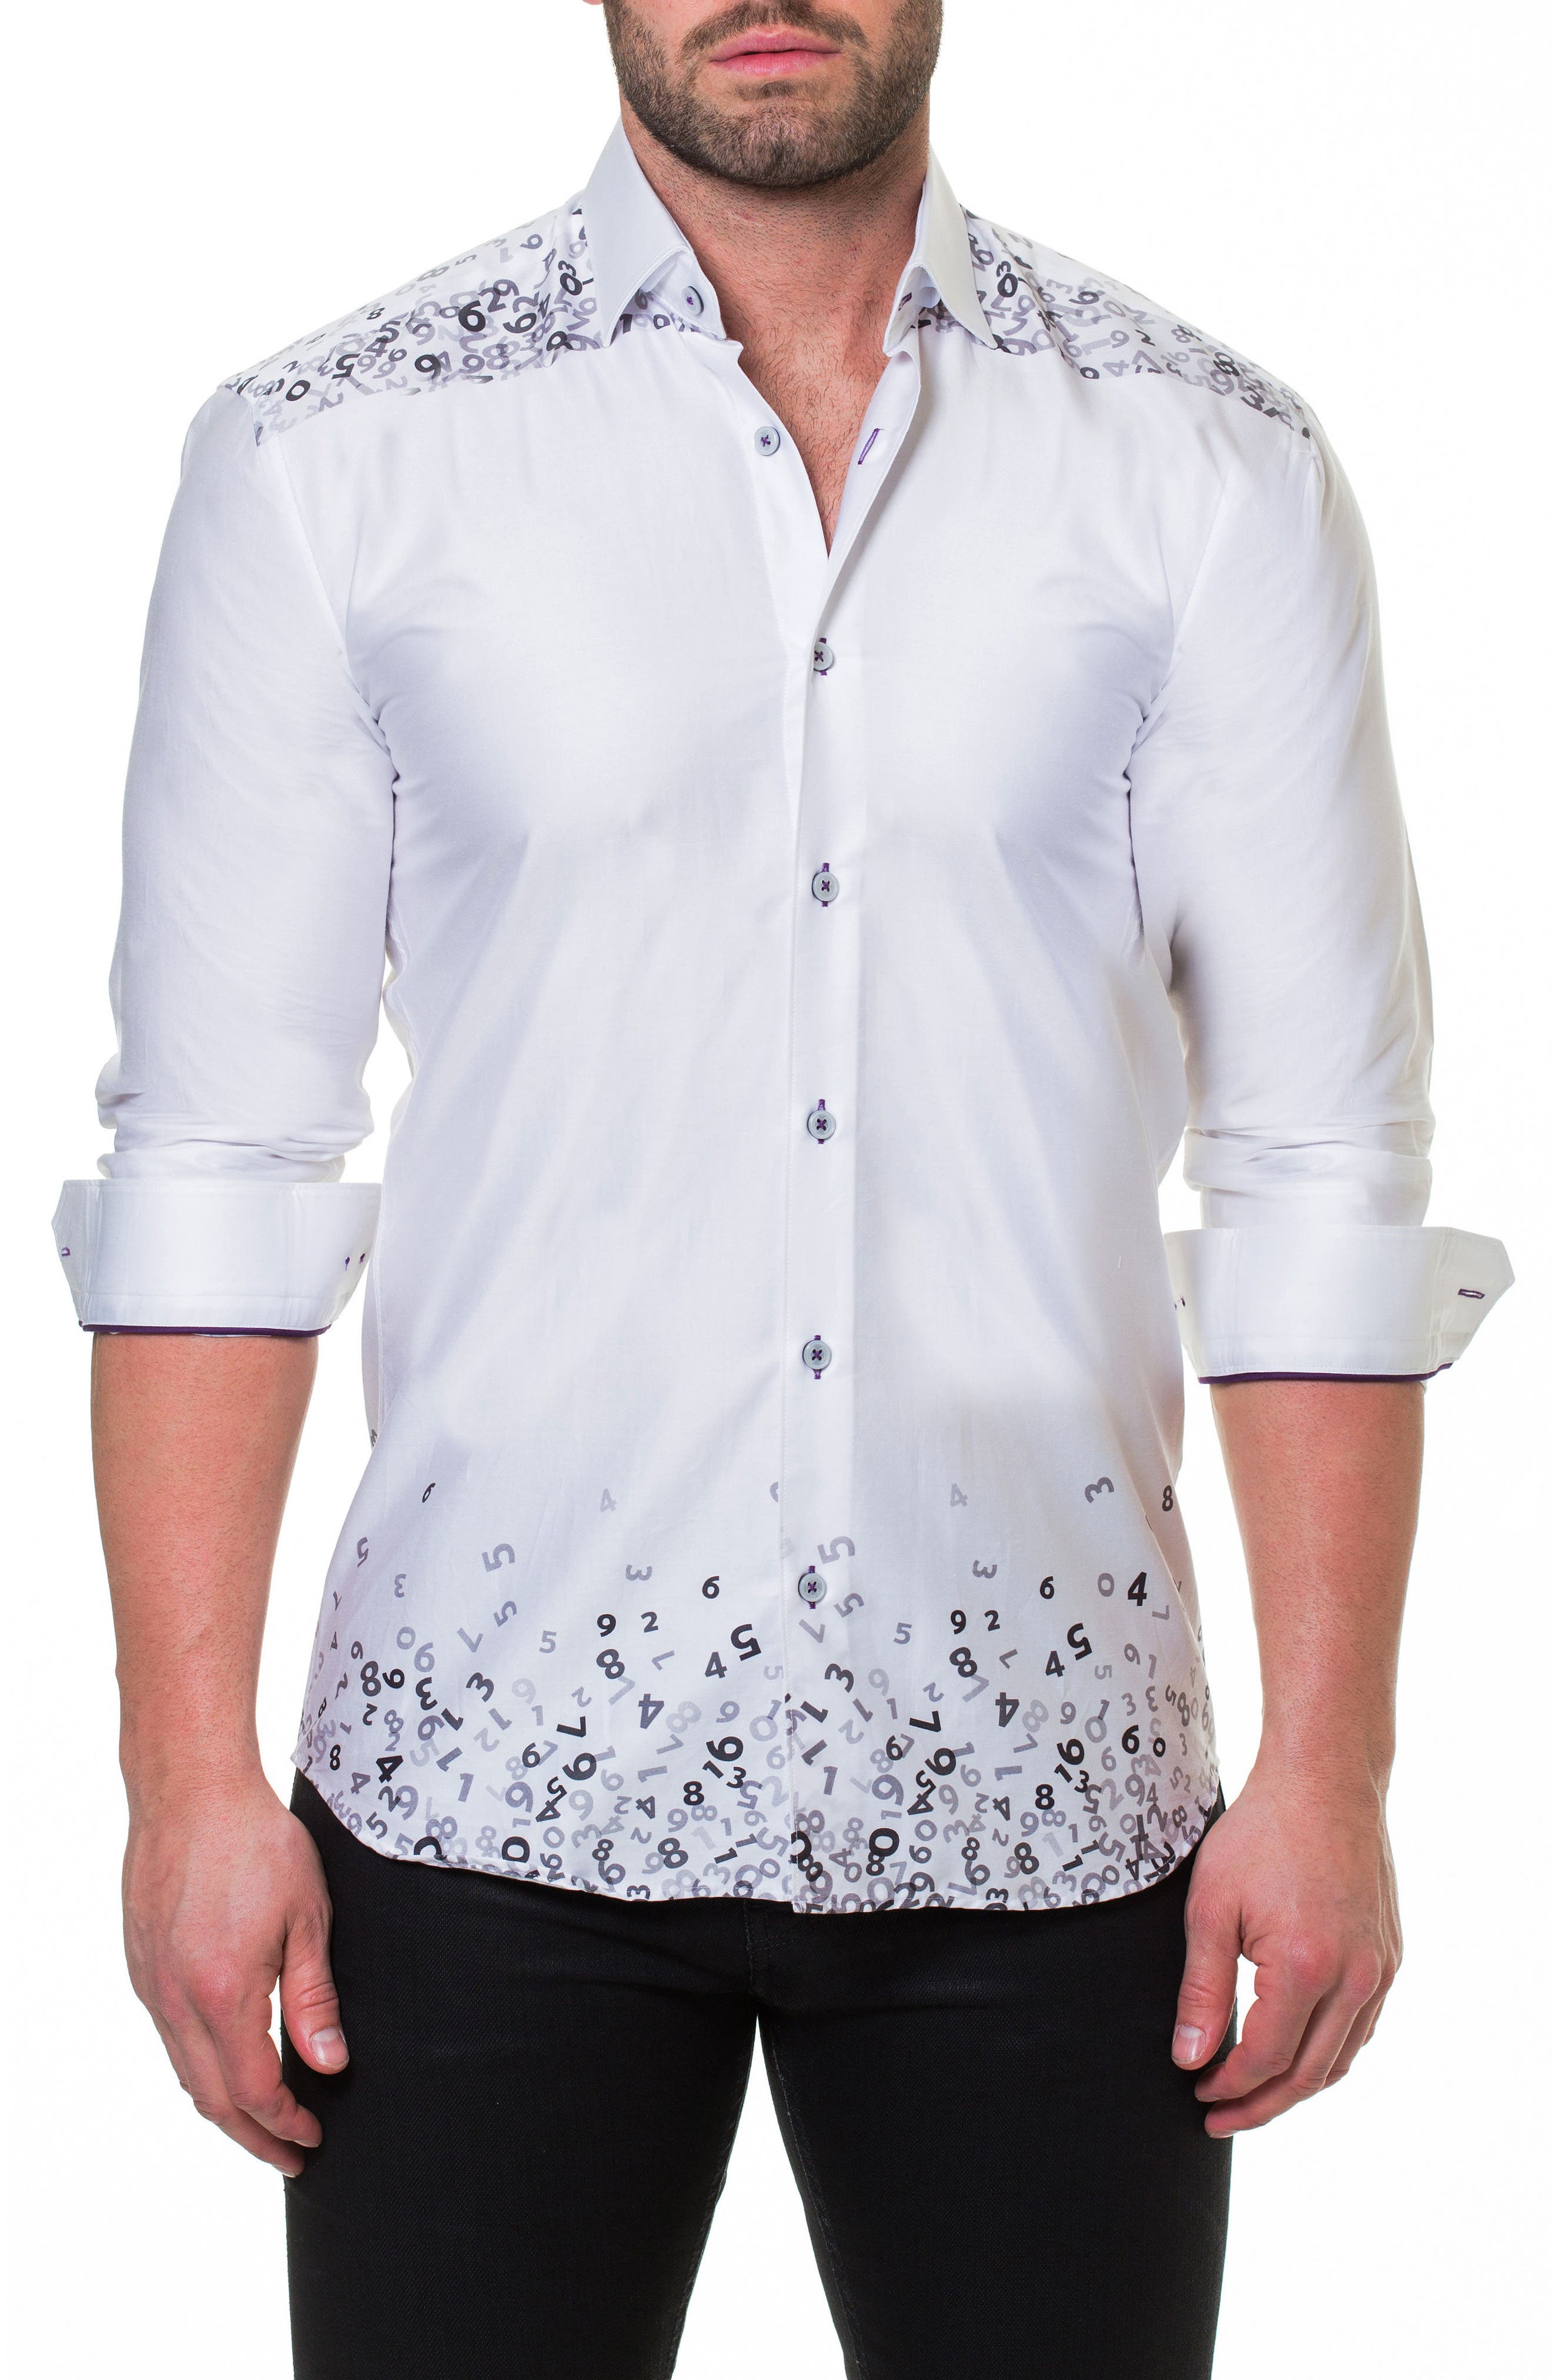 Luxor Counting White Slim Fit Sport Shirt,                         Main,                         color, White